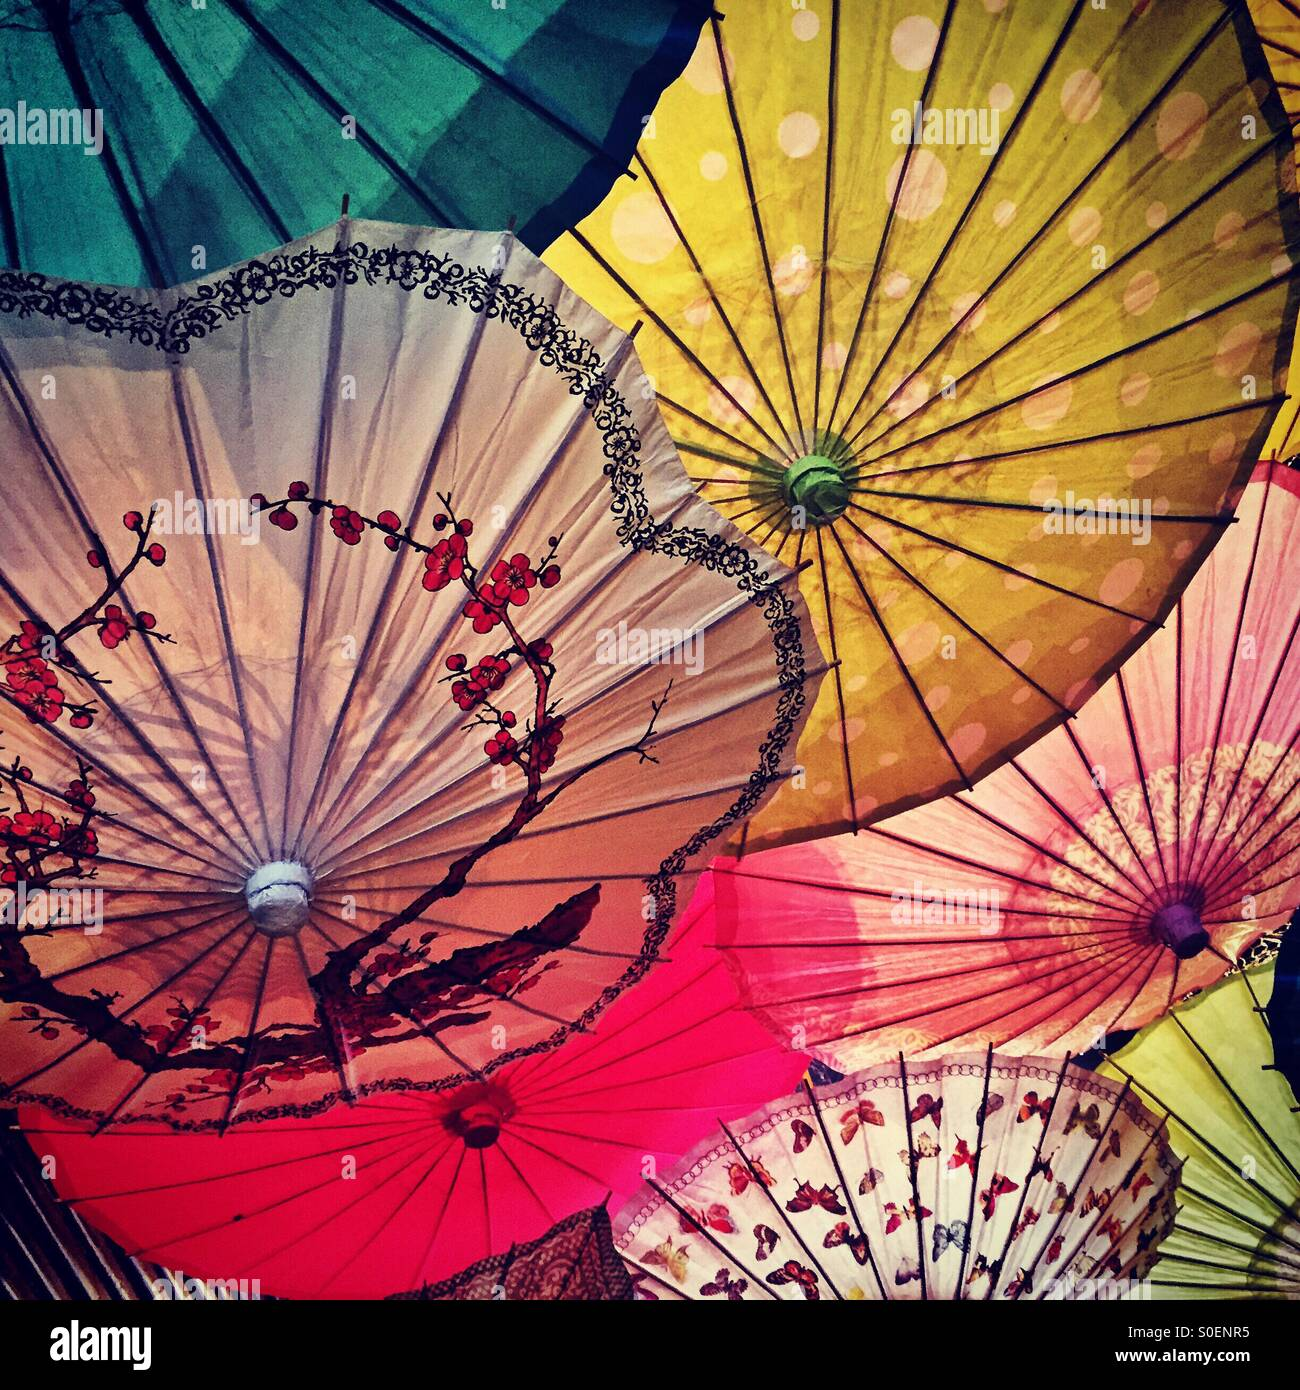 Colorful umbrellas hang from the ceiling over a source of light for a colorful and charming ambiance. - Stock Image